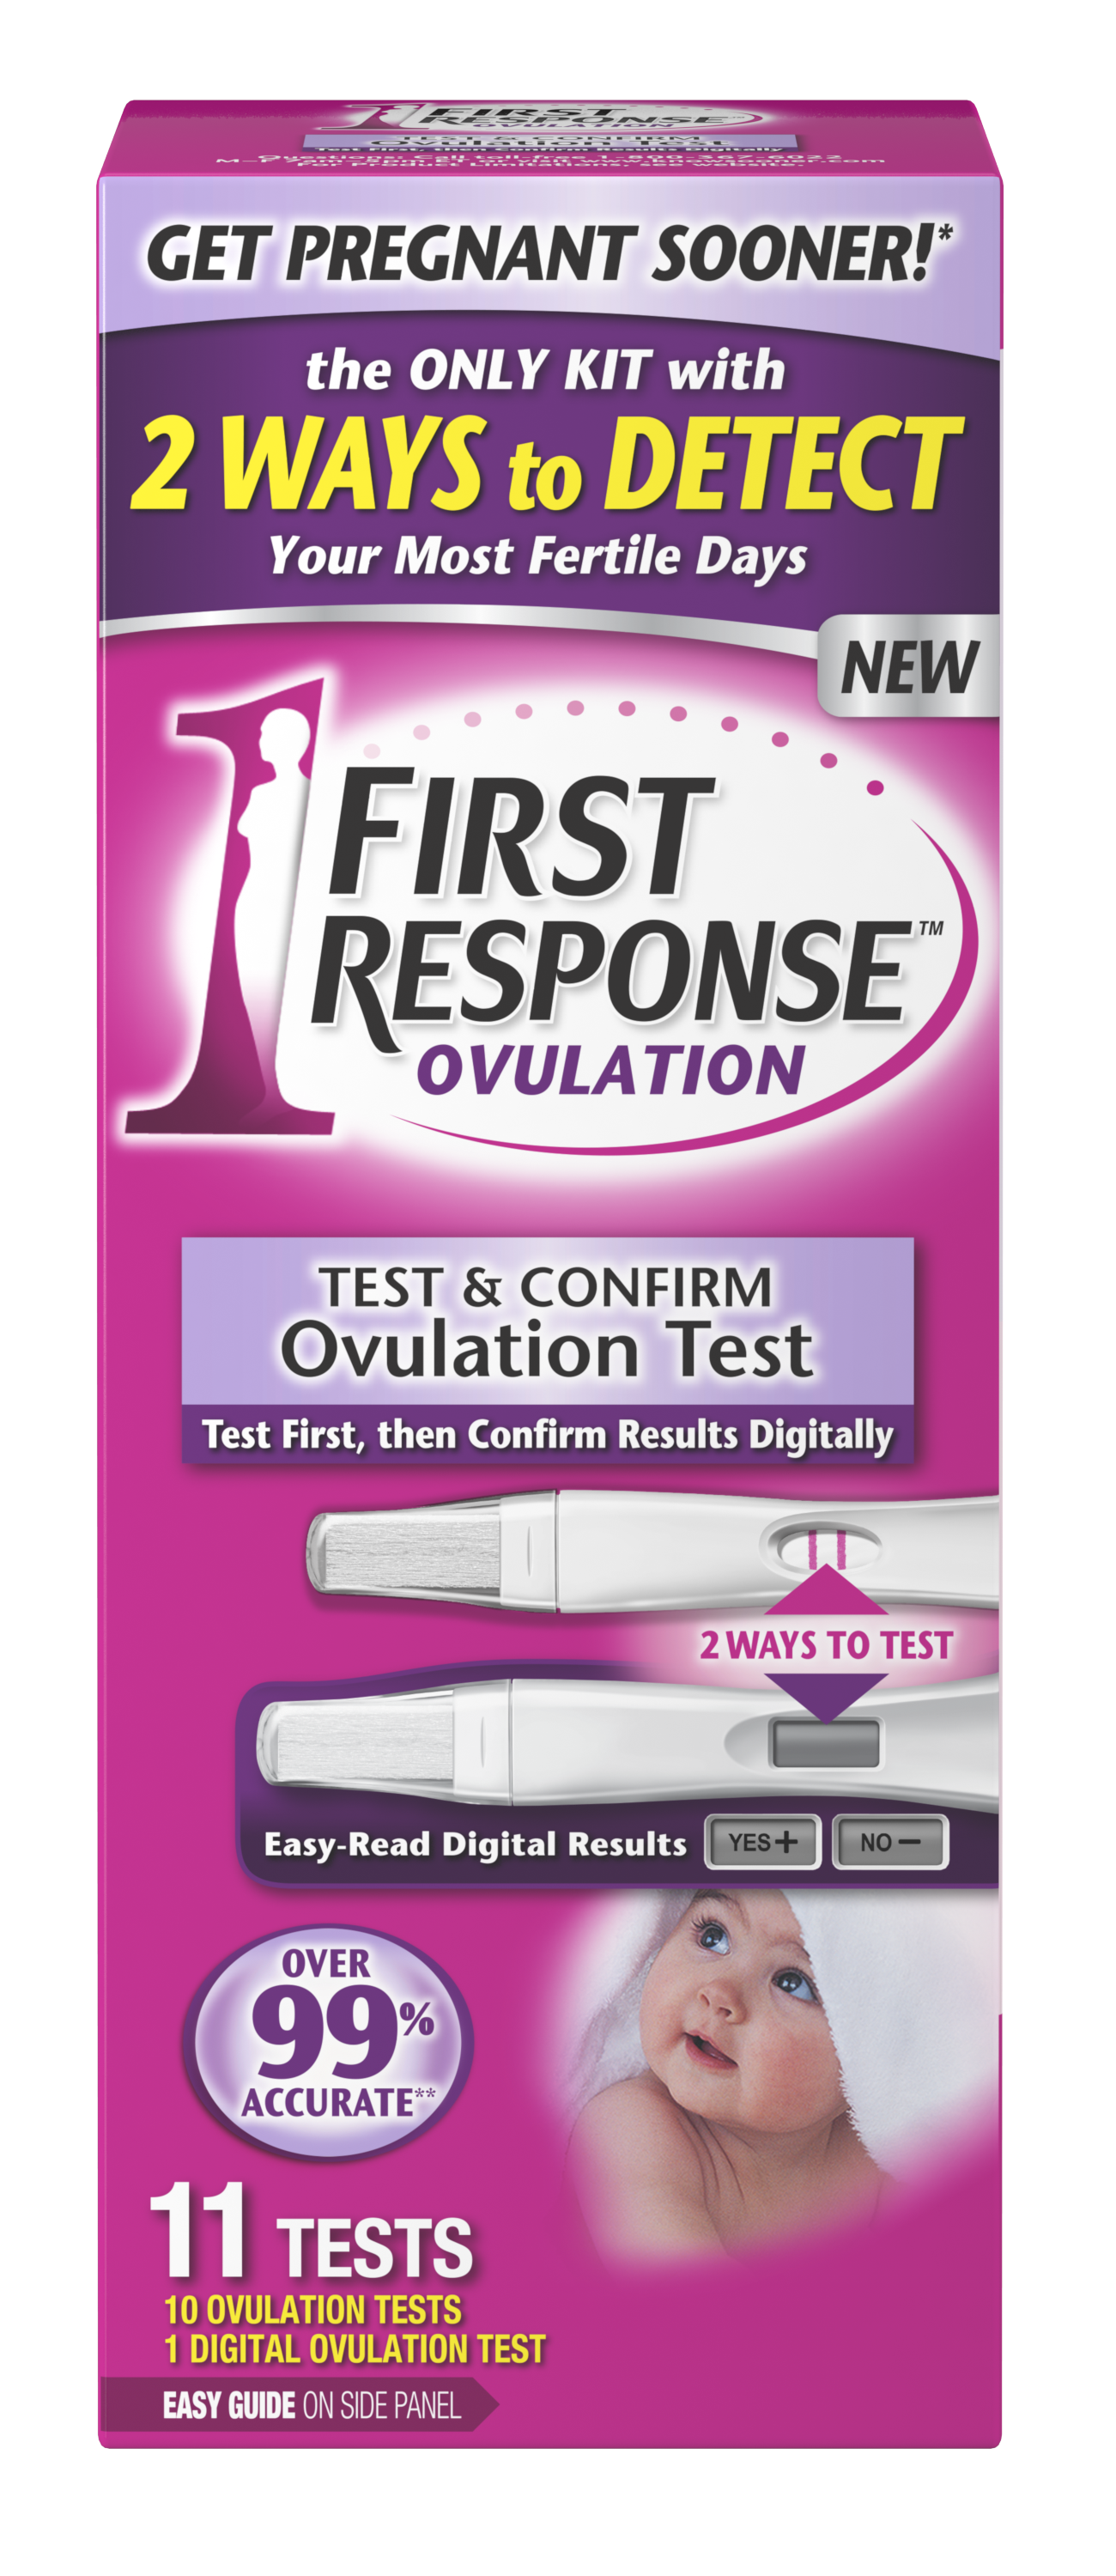 Test clipart easy test. Confirm ovulation kit first